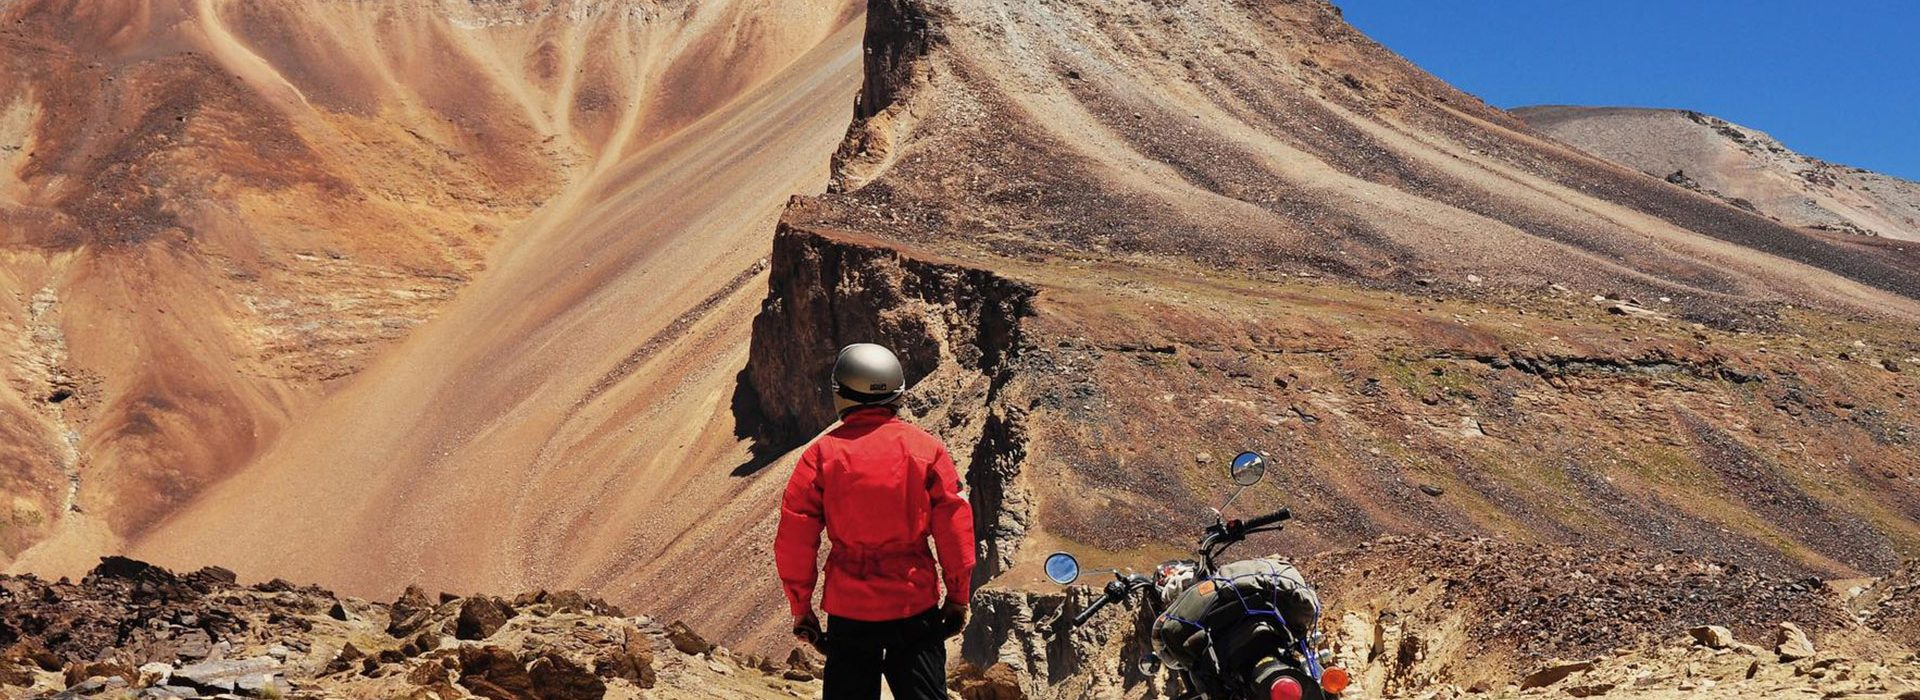 The motorcycle ride of your life through majestic peaks of the Himalayas on the world's highest motorable road.